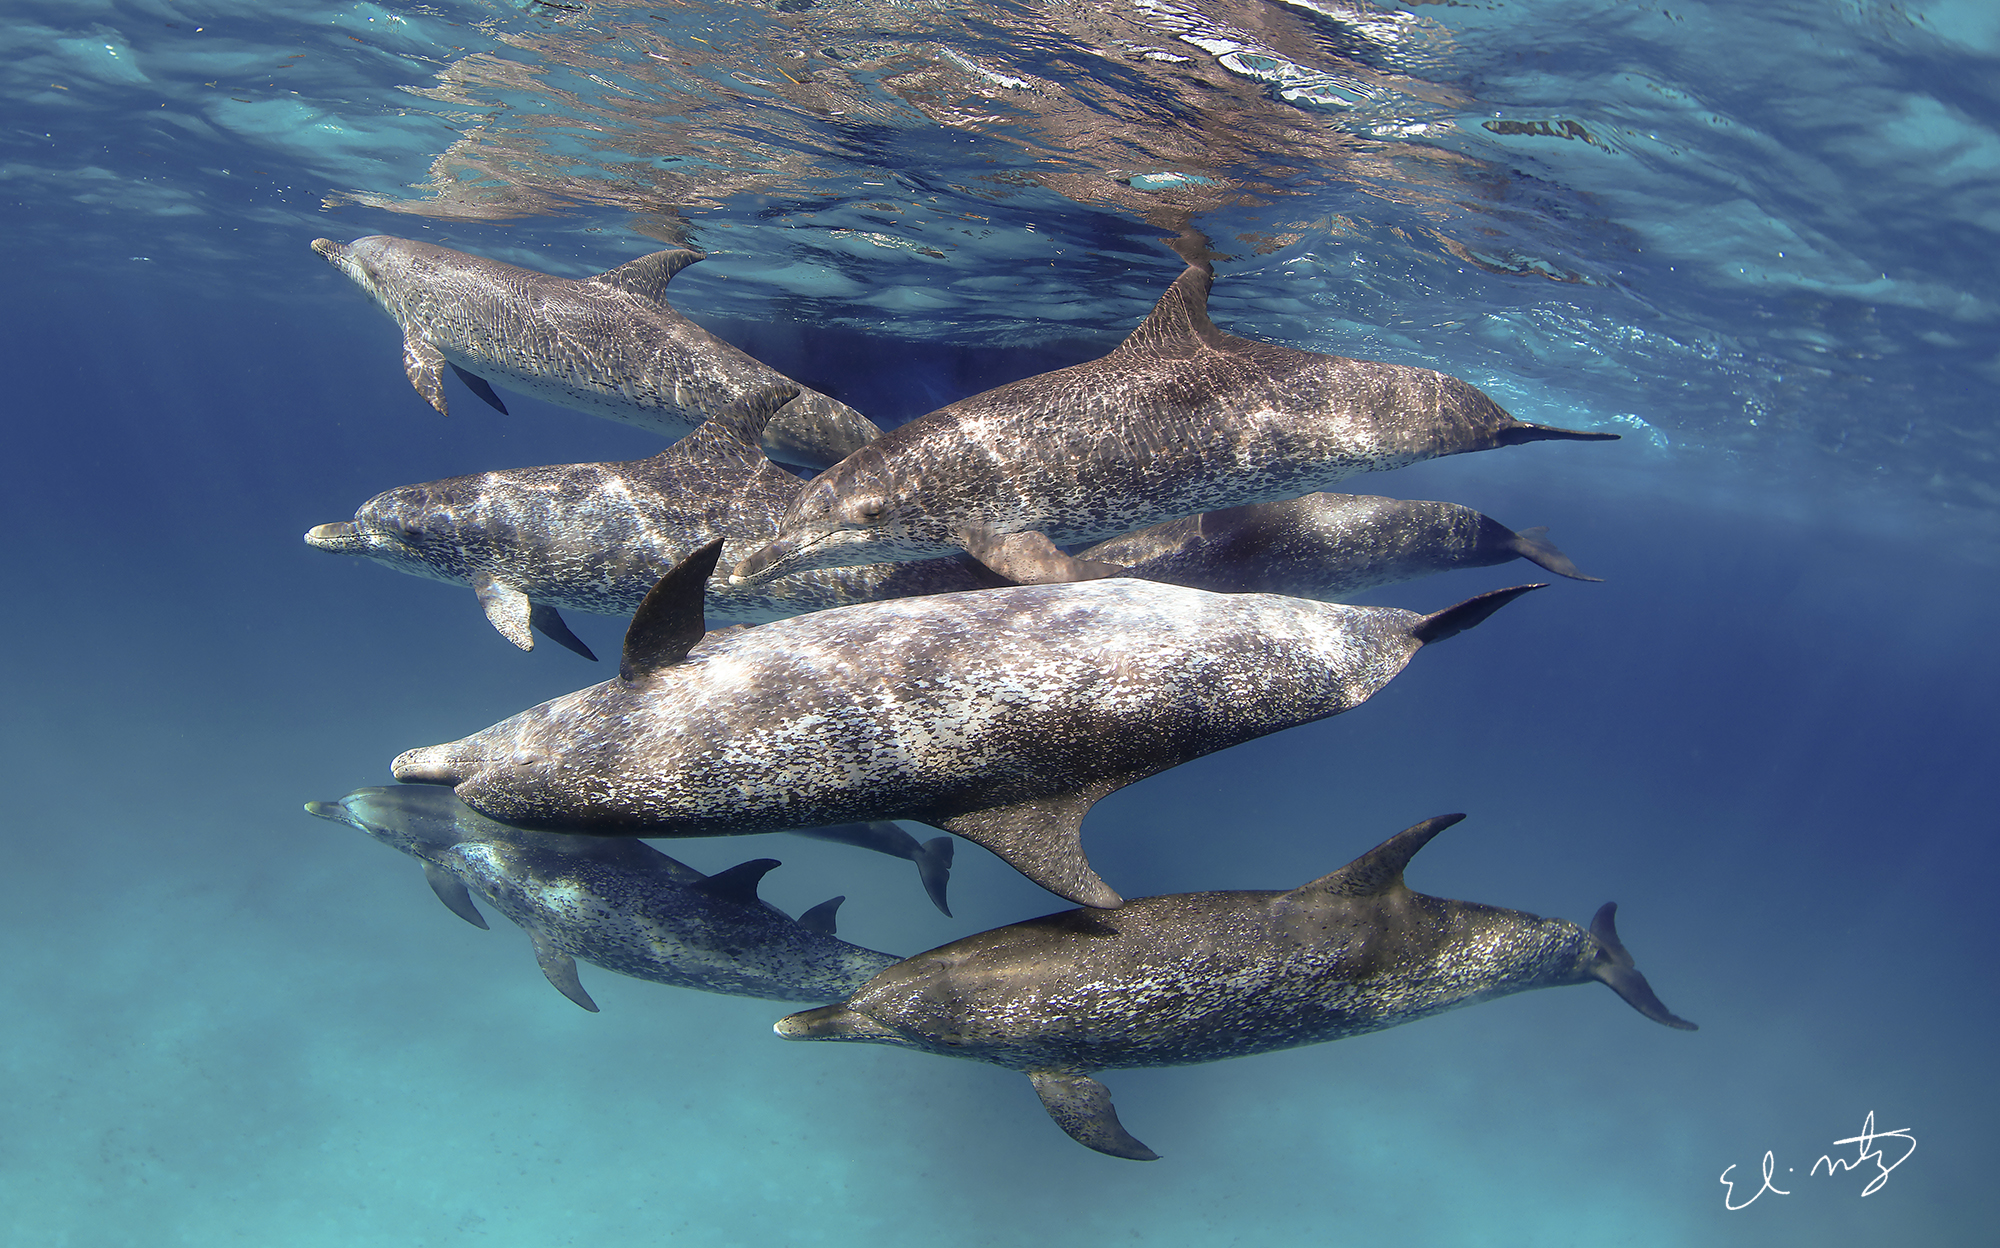 13. Atlantic spotted dolphins off Bimini, Bahamas.